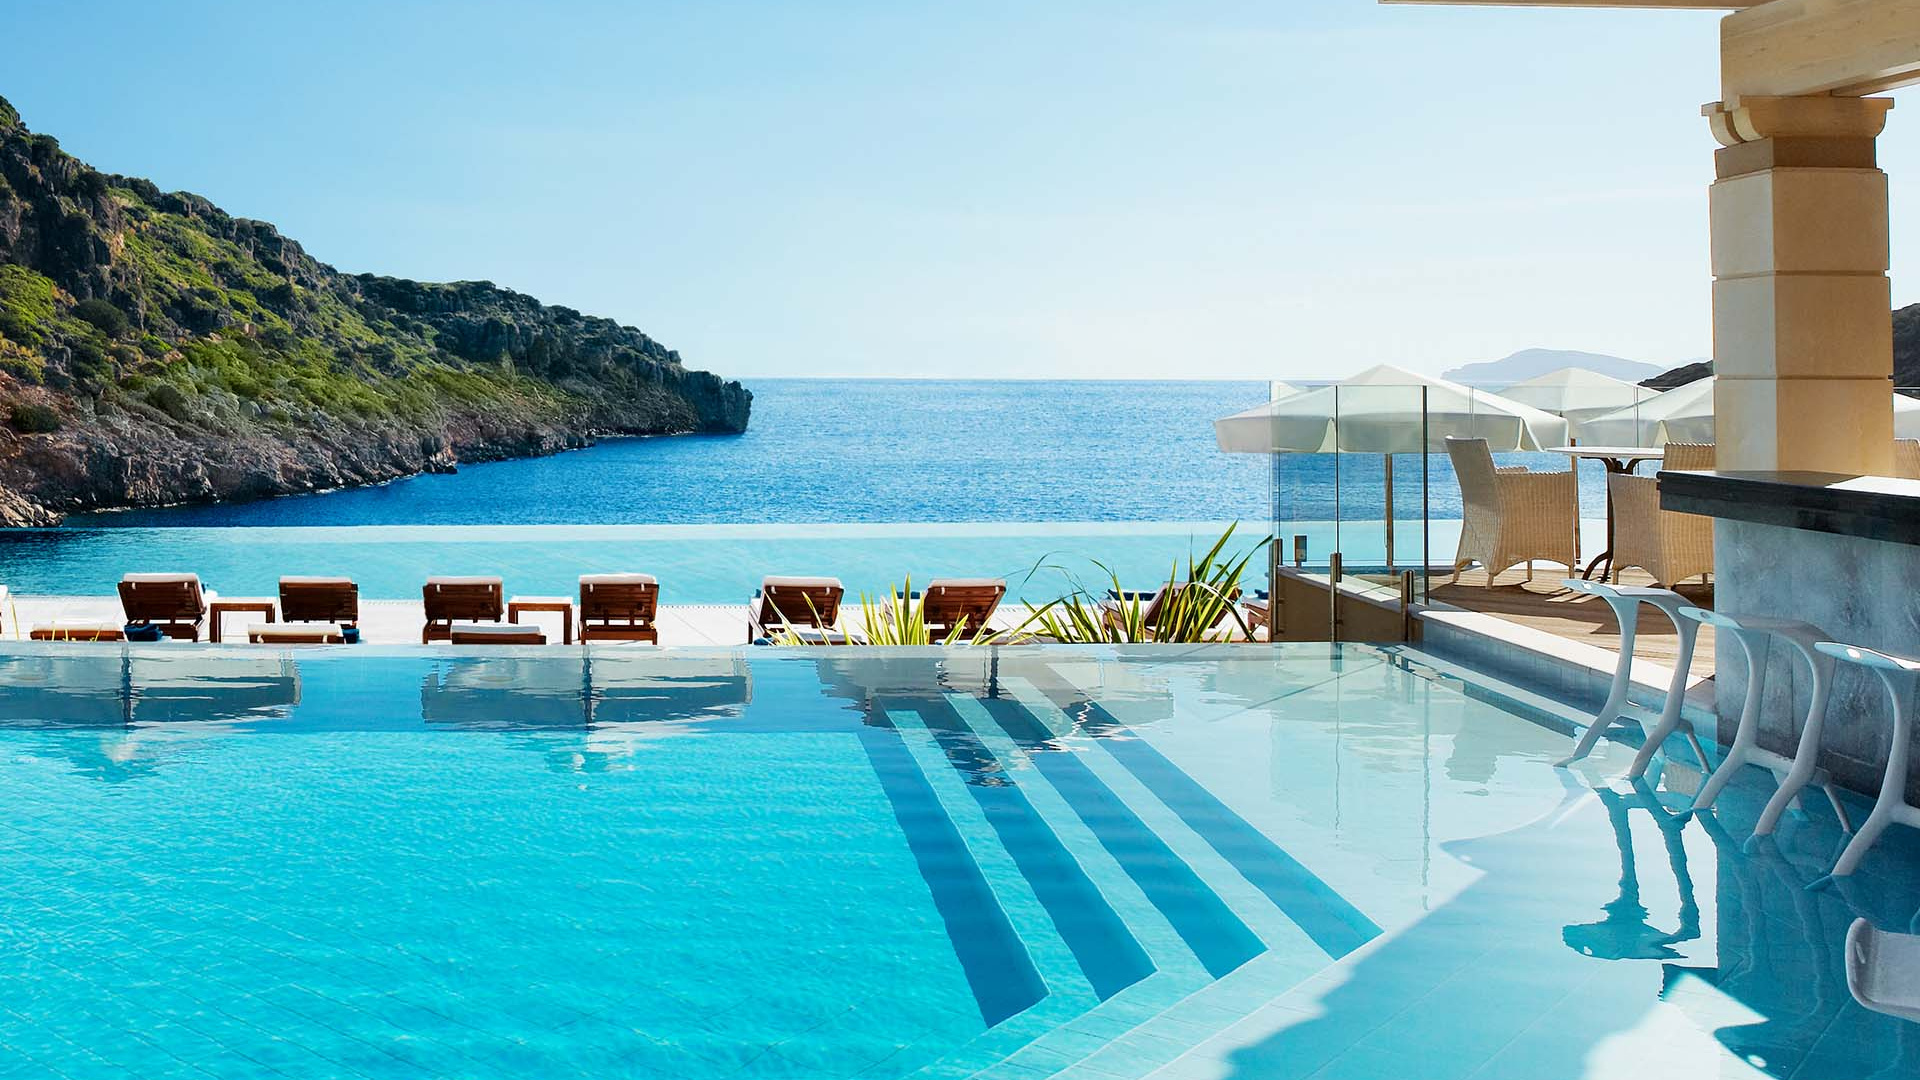 The infinity edge pool at Daios Cove